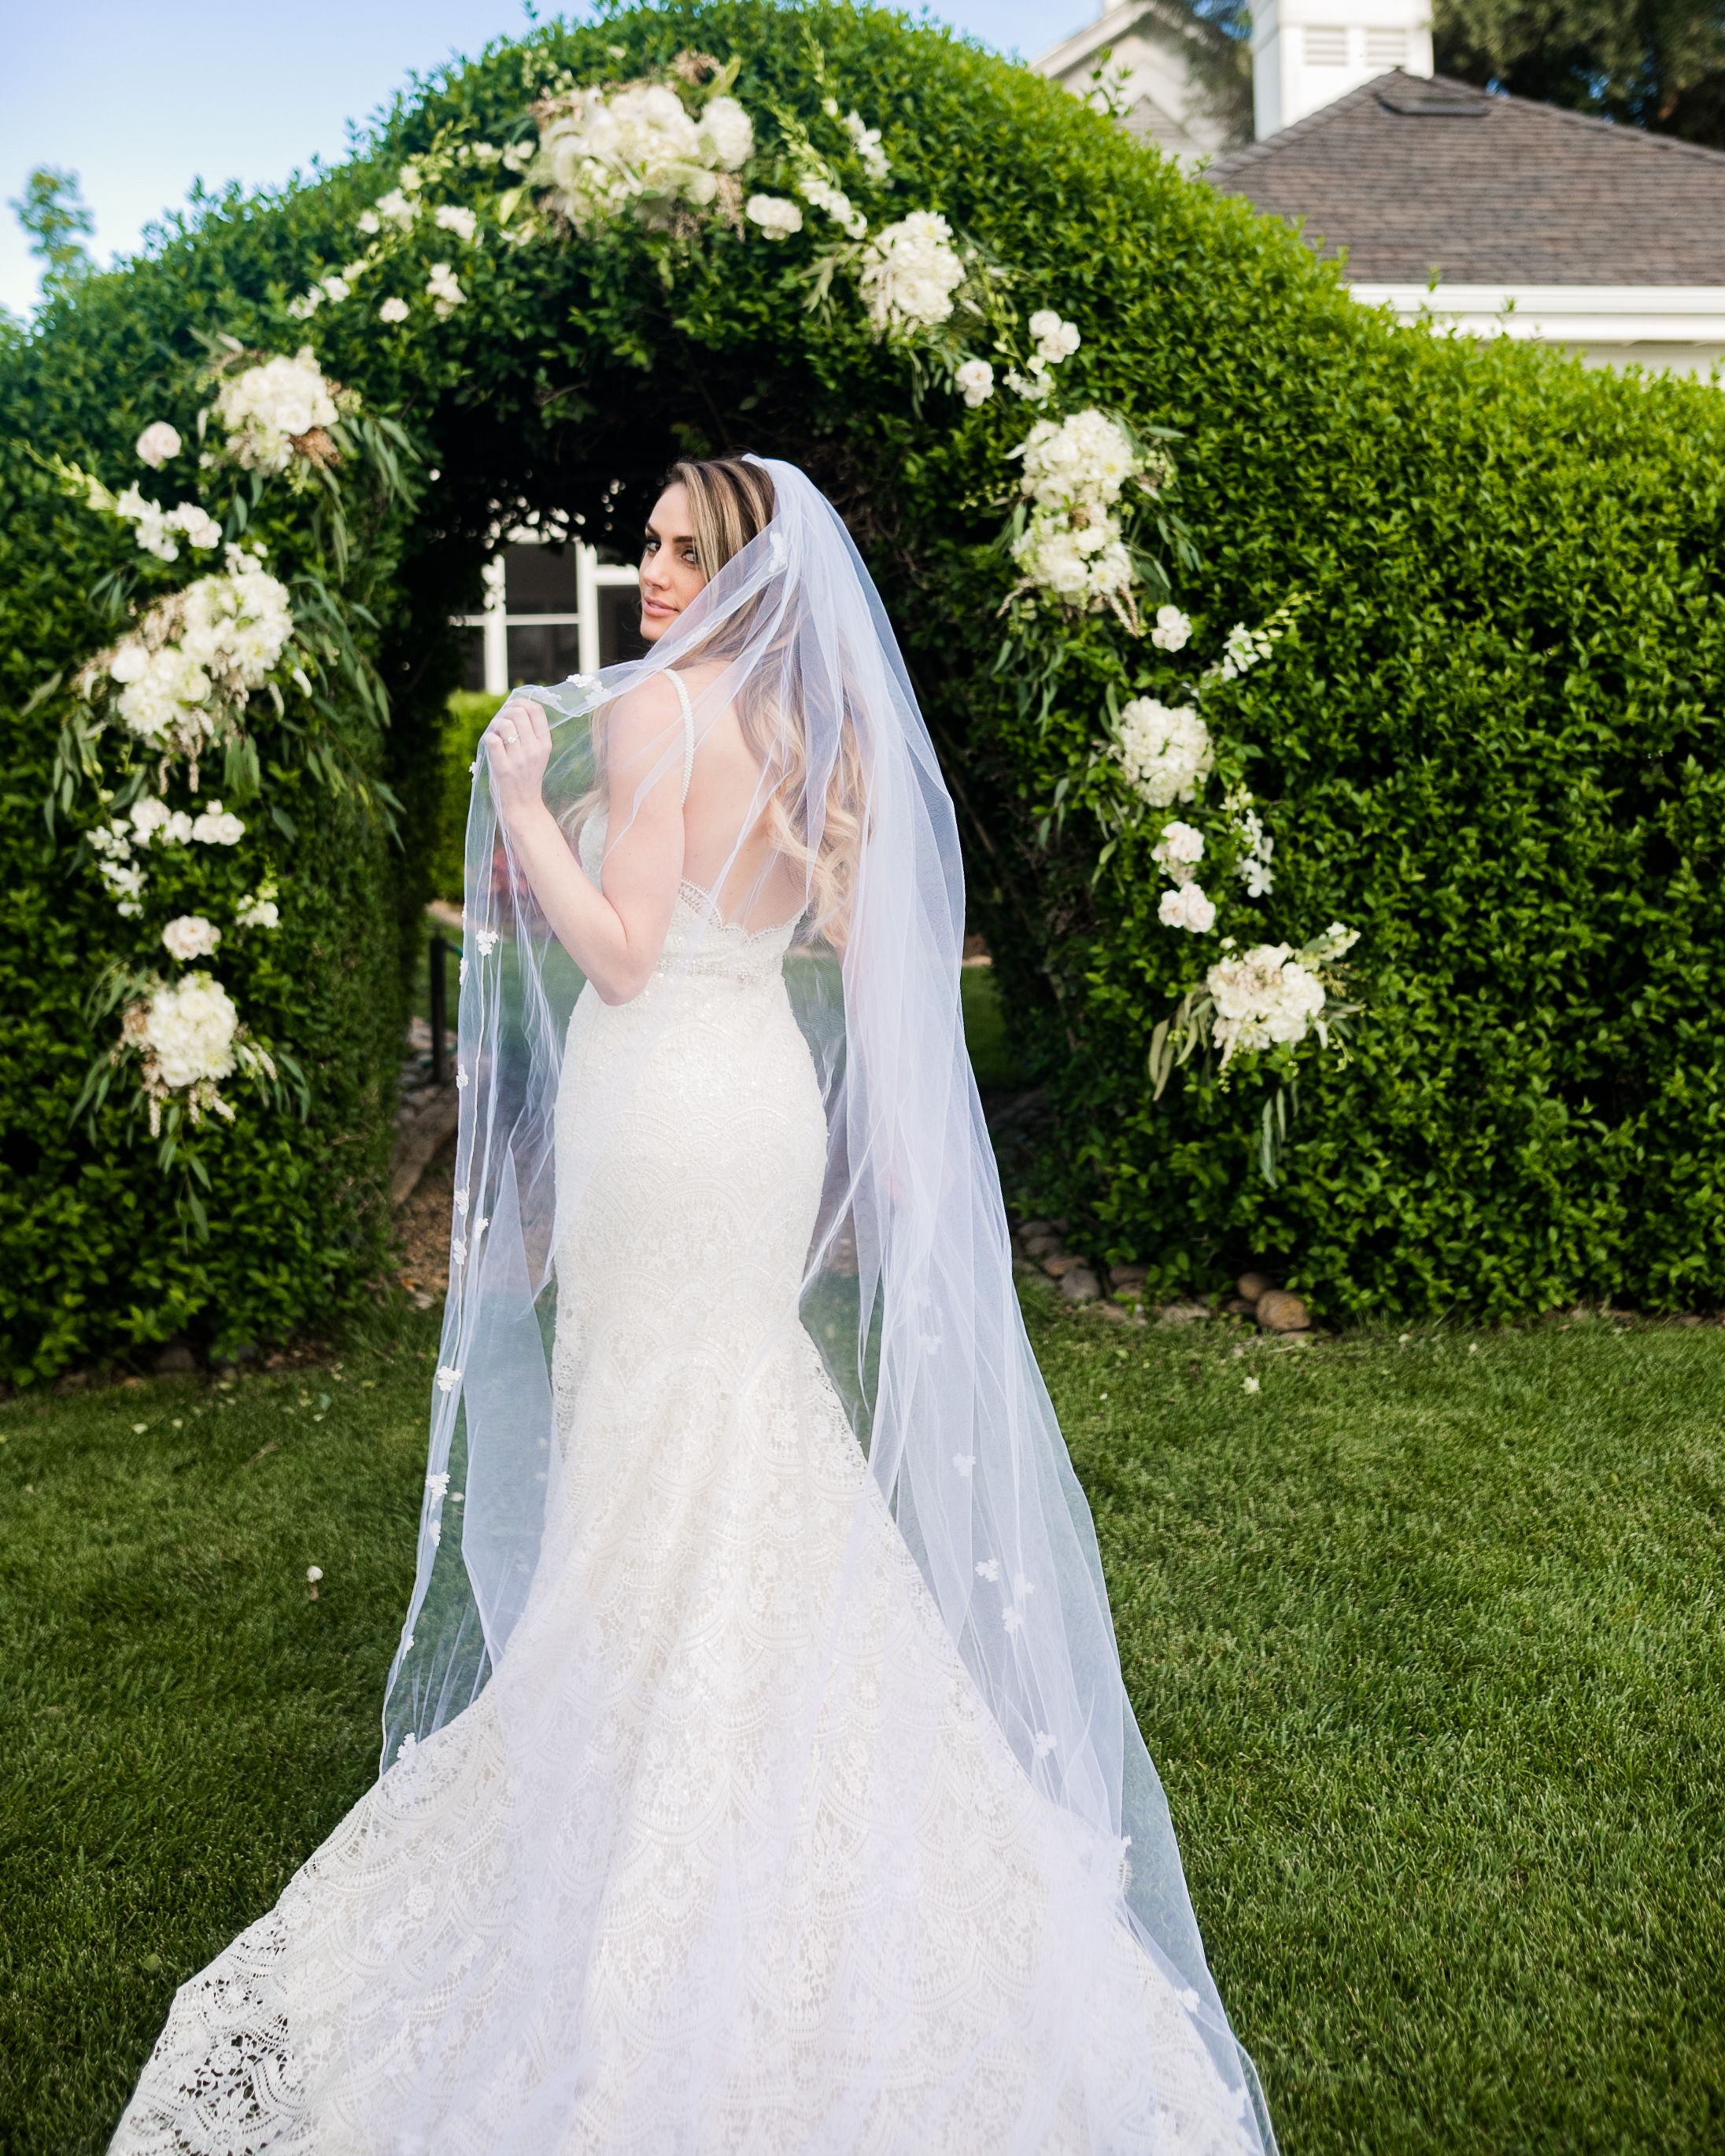 Hydrangea Macrophylla Wedding Gown: Hydrangeas, Roses And Orchids Decorate The Hedge At Oak